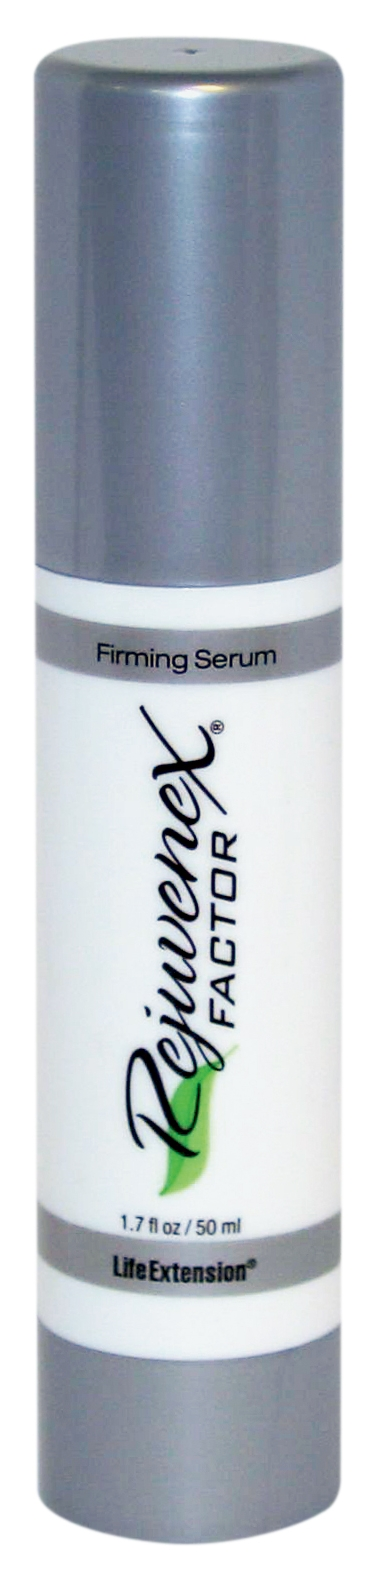 RejuveneX Factor Firming Serum 1.7 oz (50 ml) by Life Extension